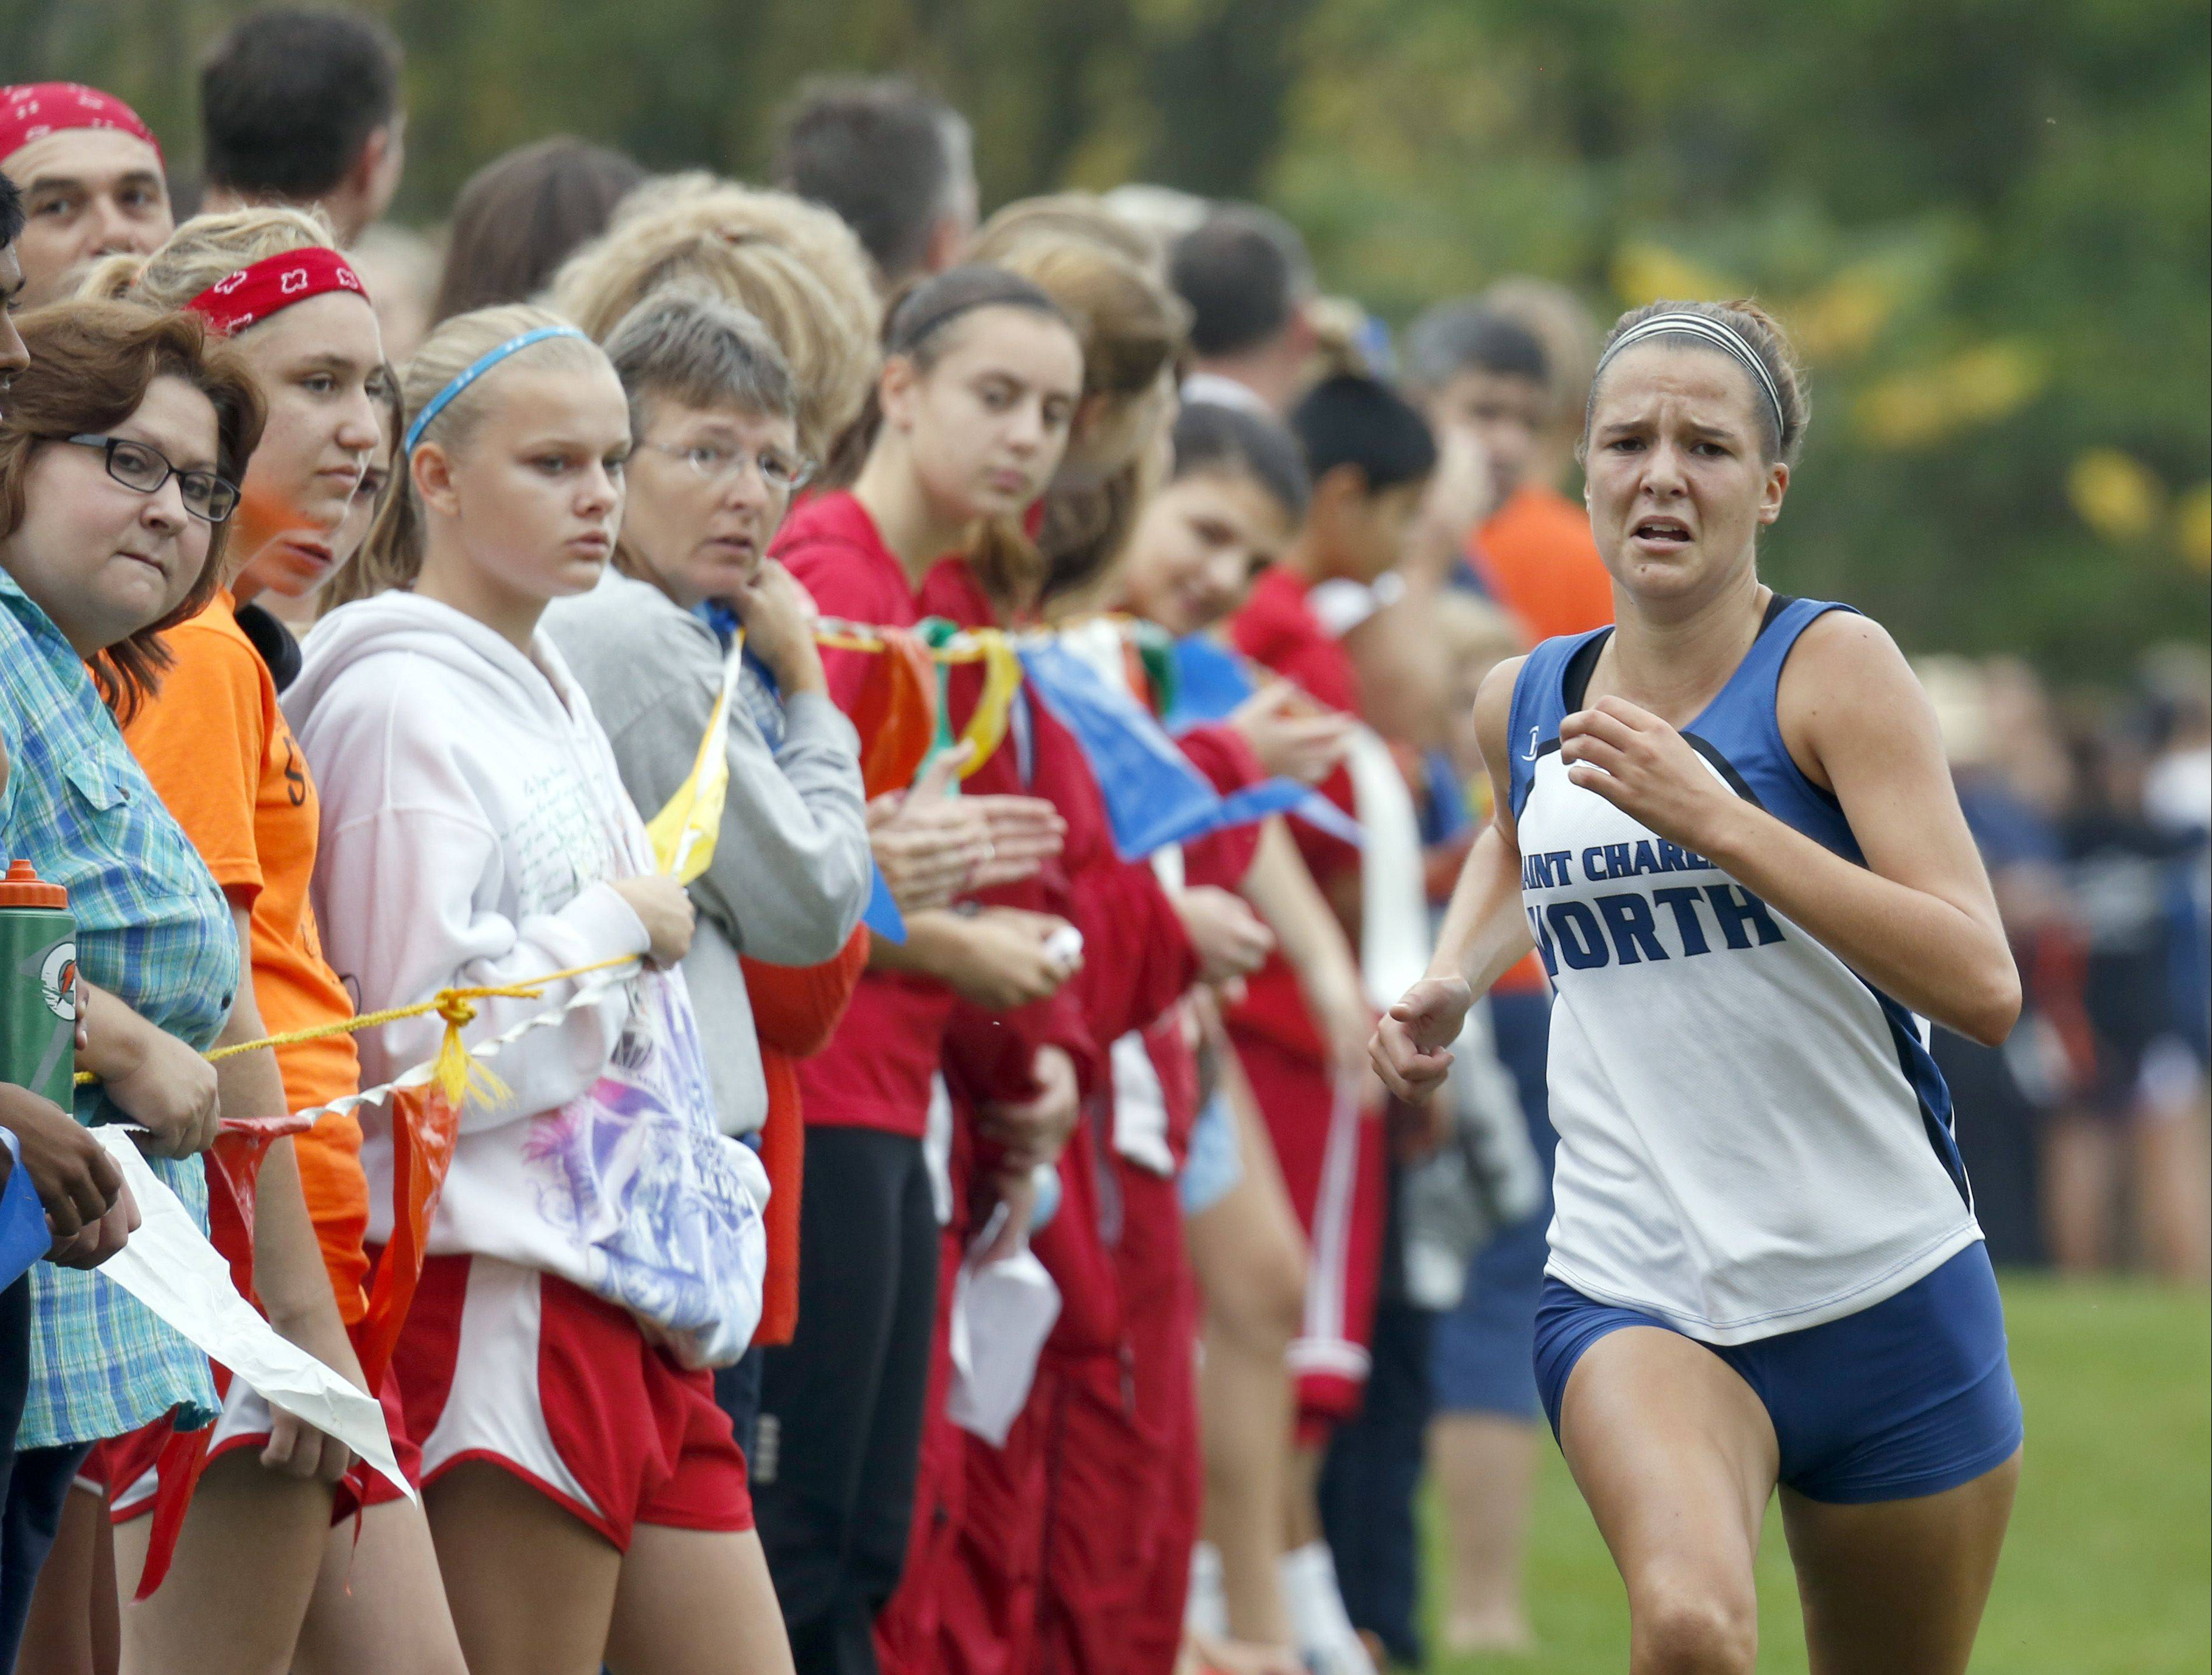 St. Charles North's Ashley England on her way to third during girls cross country at LeRoy Oakes in St. Charles Saturday.